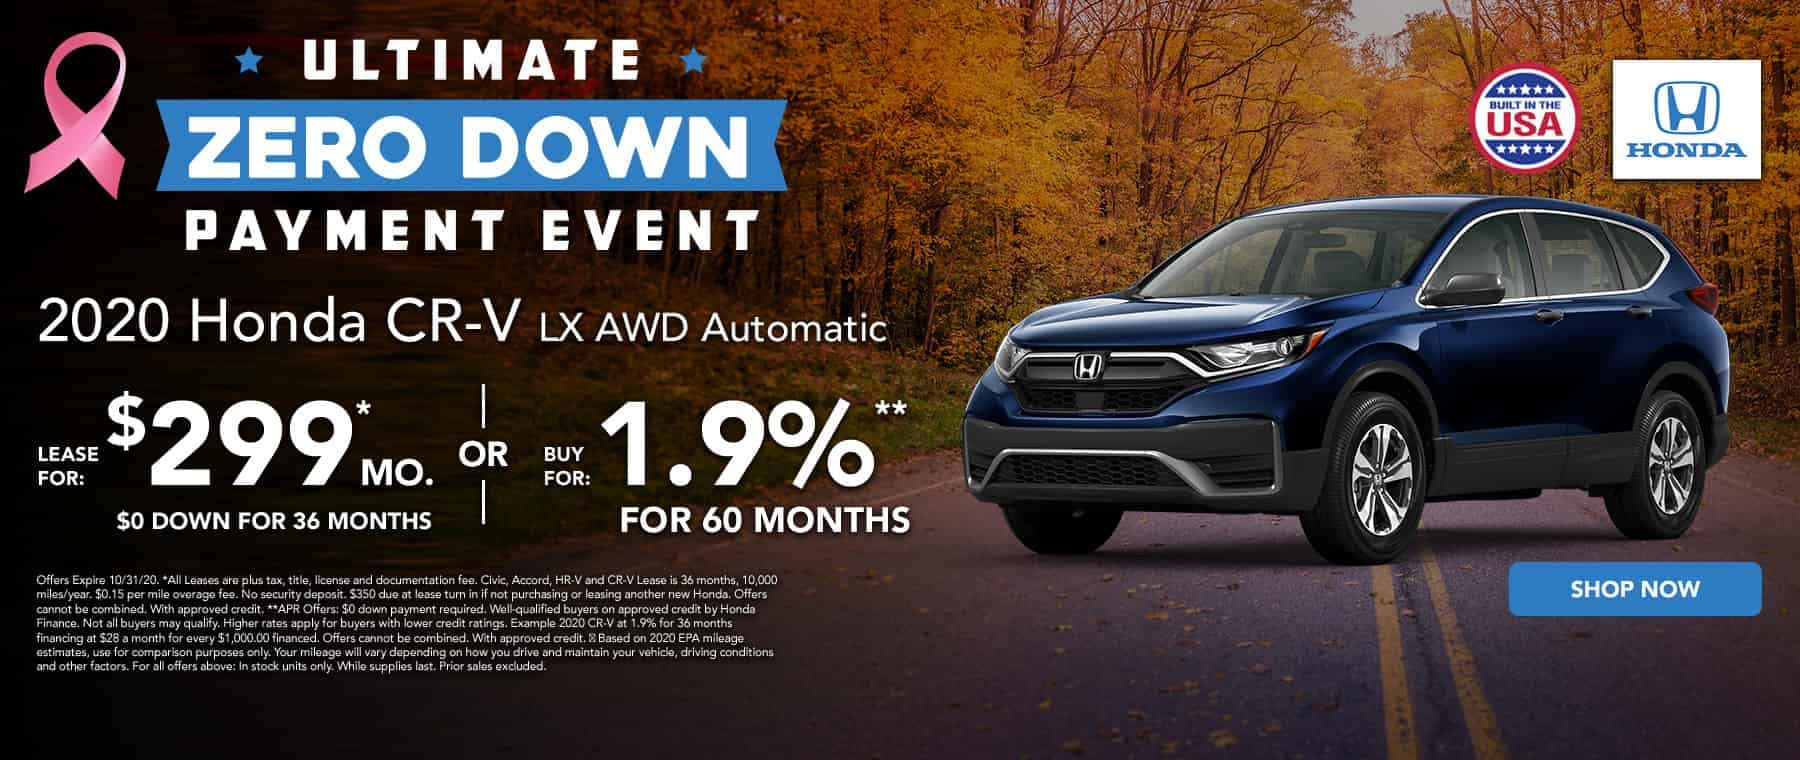 2020 HONDA CR-V $299 PER MONTH